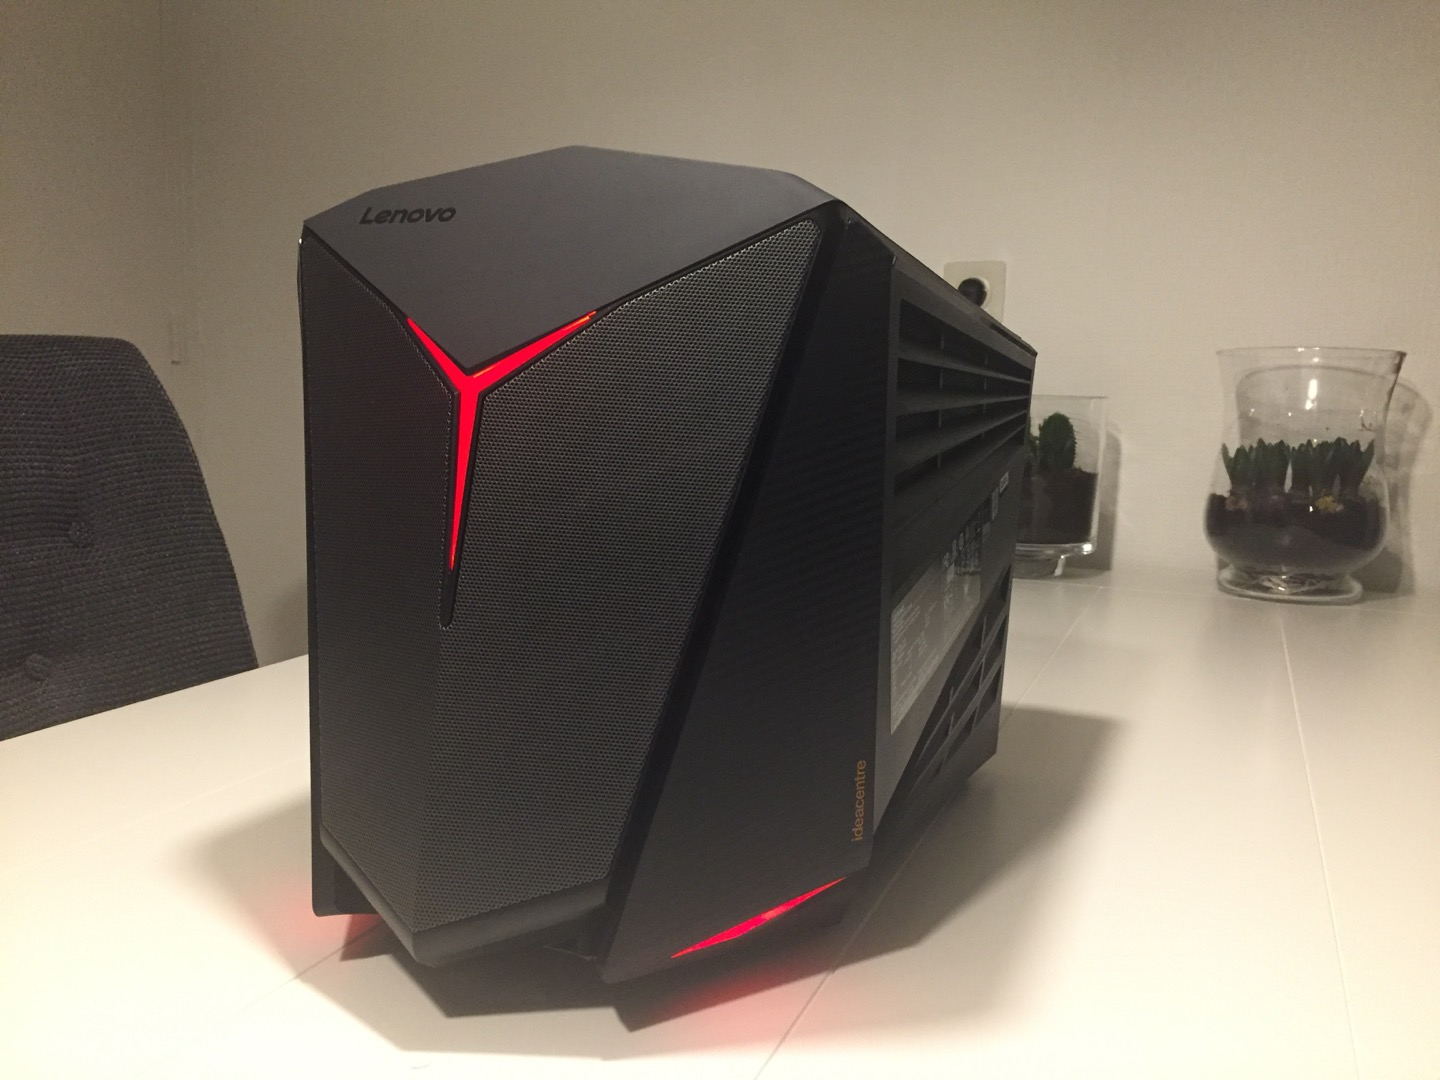 Review: lenovo y710 cube gaming pc entert1.nl